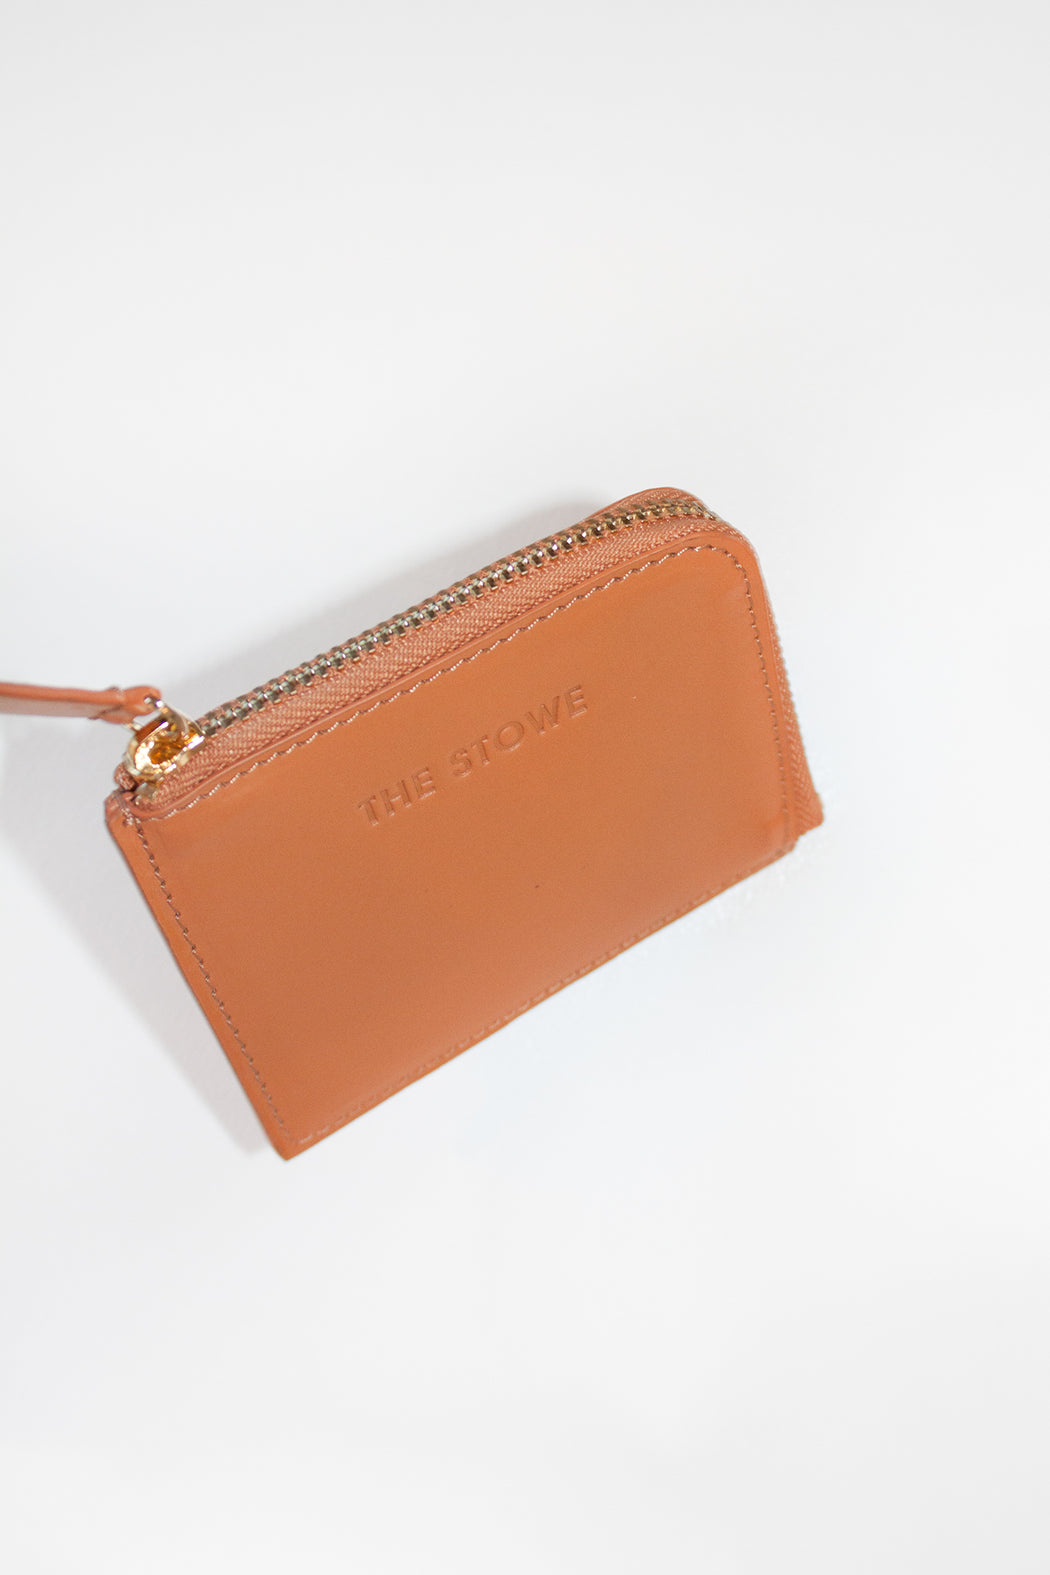 The Stowe Leather Goods | Card Wallet Veg Tan | Hazel & Rose